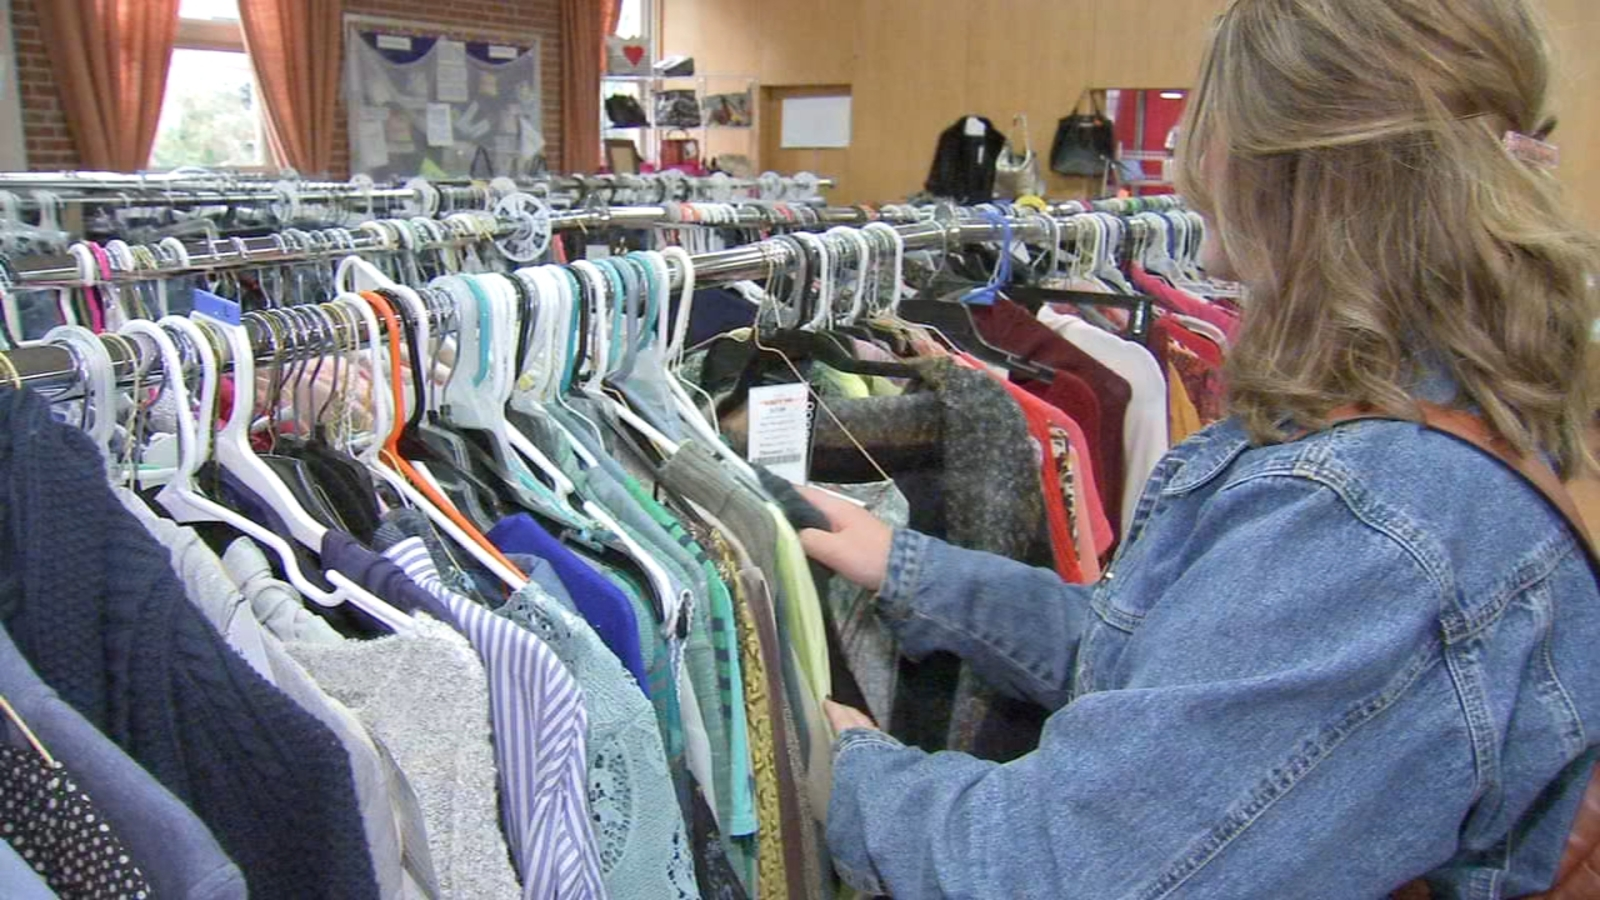 Sustainability as well as saving money driving millennials to consignment shops